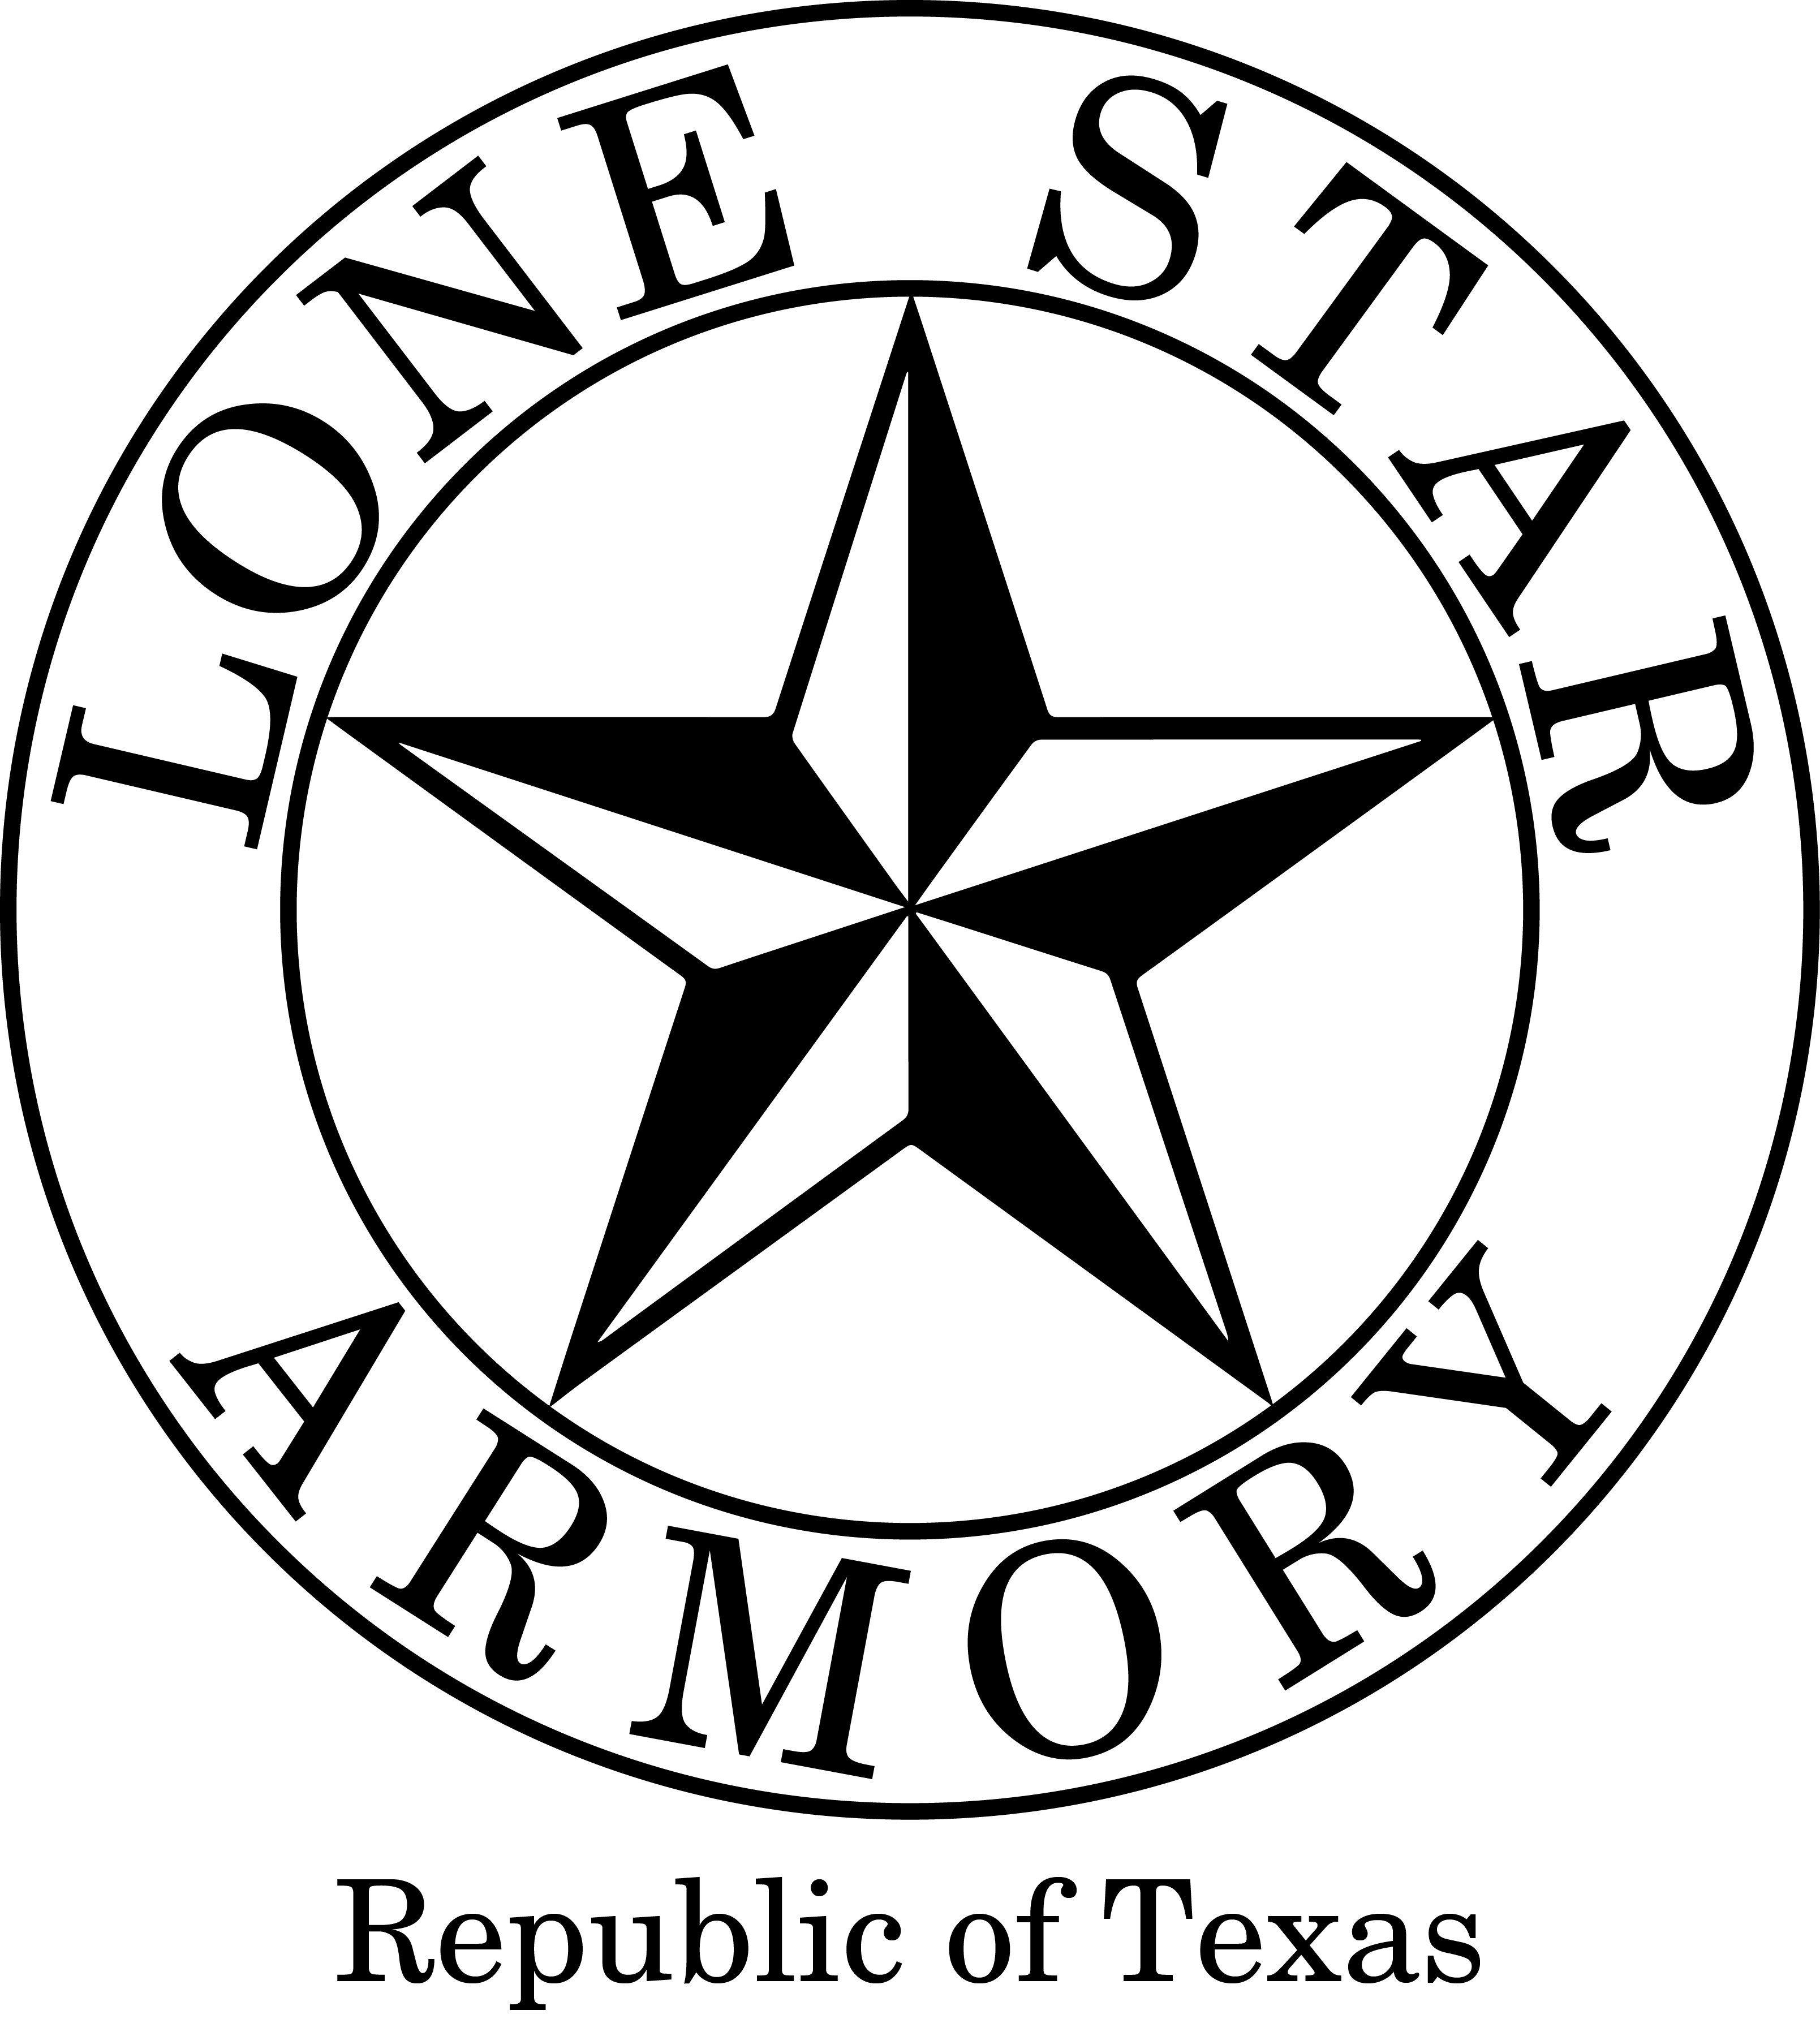 Texas lone star clipart vector black and white library Texas Star Drawing at GetDrawings.com | Free for personal use Texas ... vector black and white library